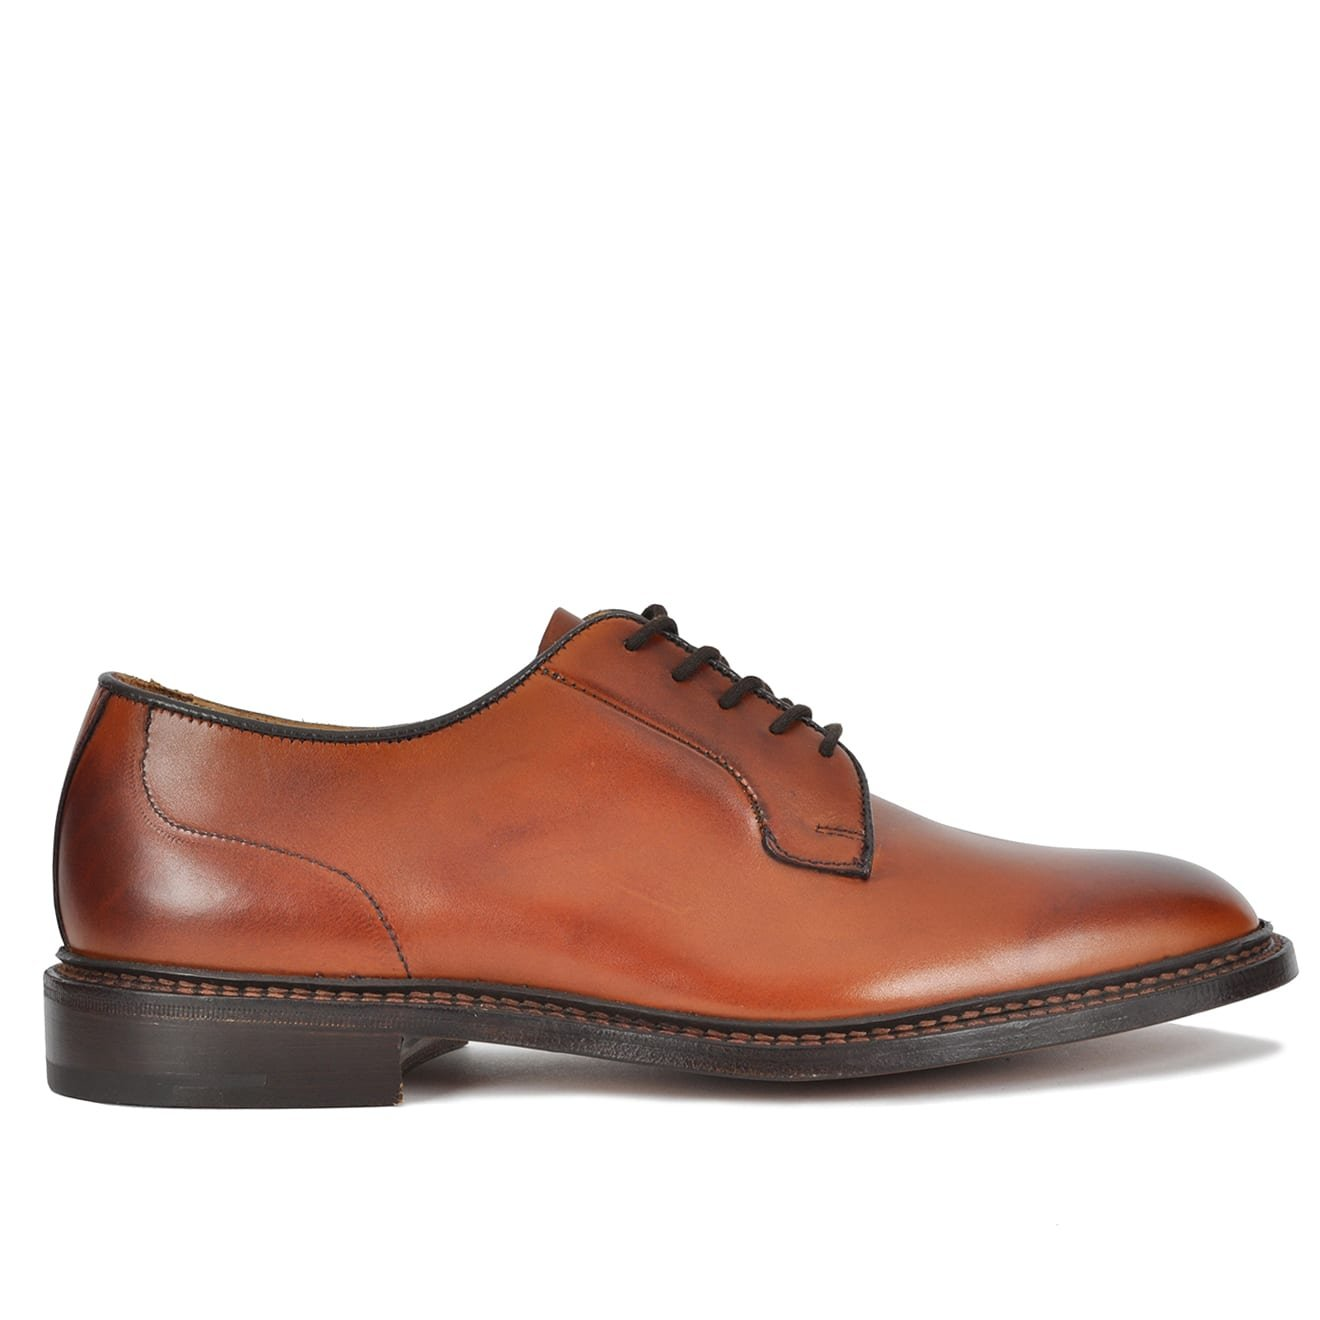 Brogue Shoes On Sale, Dark Brown, Leather, 2017, 6 Trickers